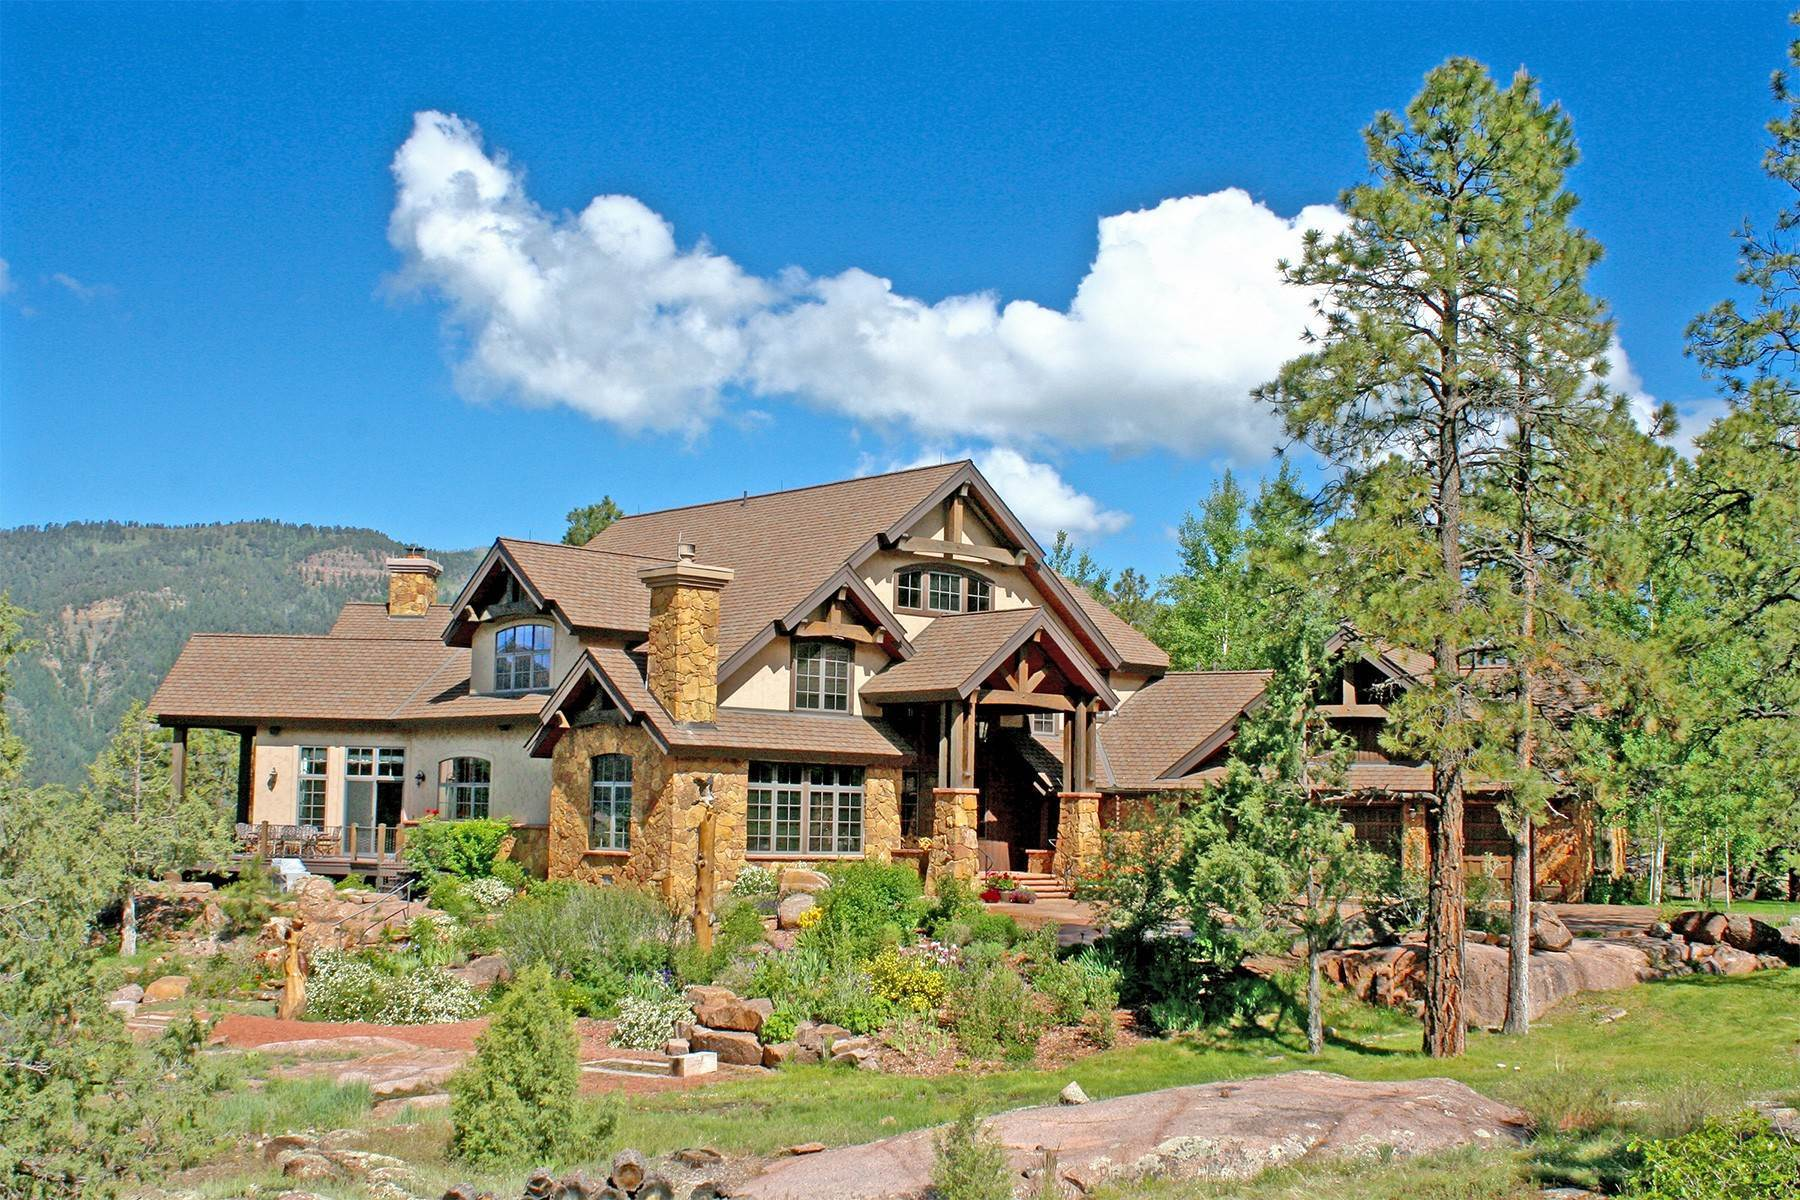 Single Family Homes for Sale at Granite Fall Lodge 1501 Celadon Drive East Durango, Colorado 81301 United States